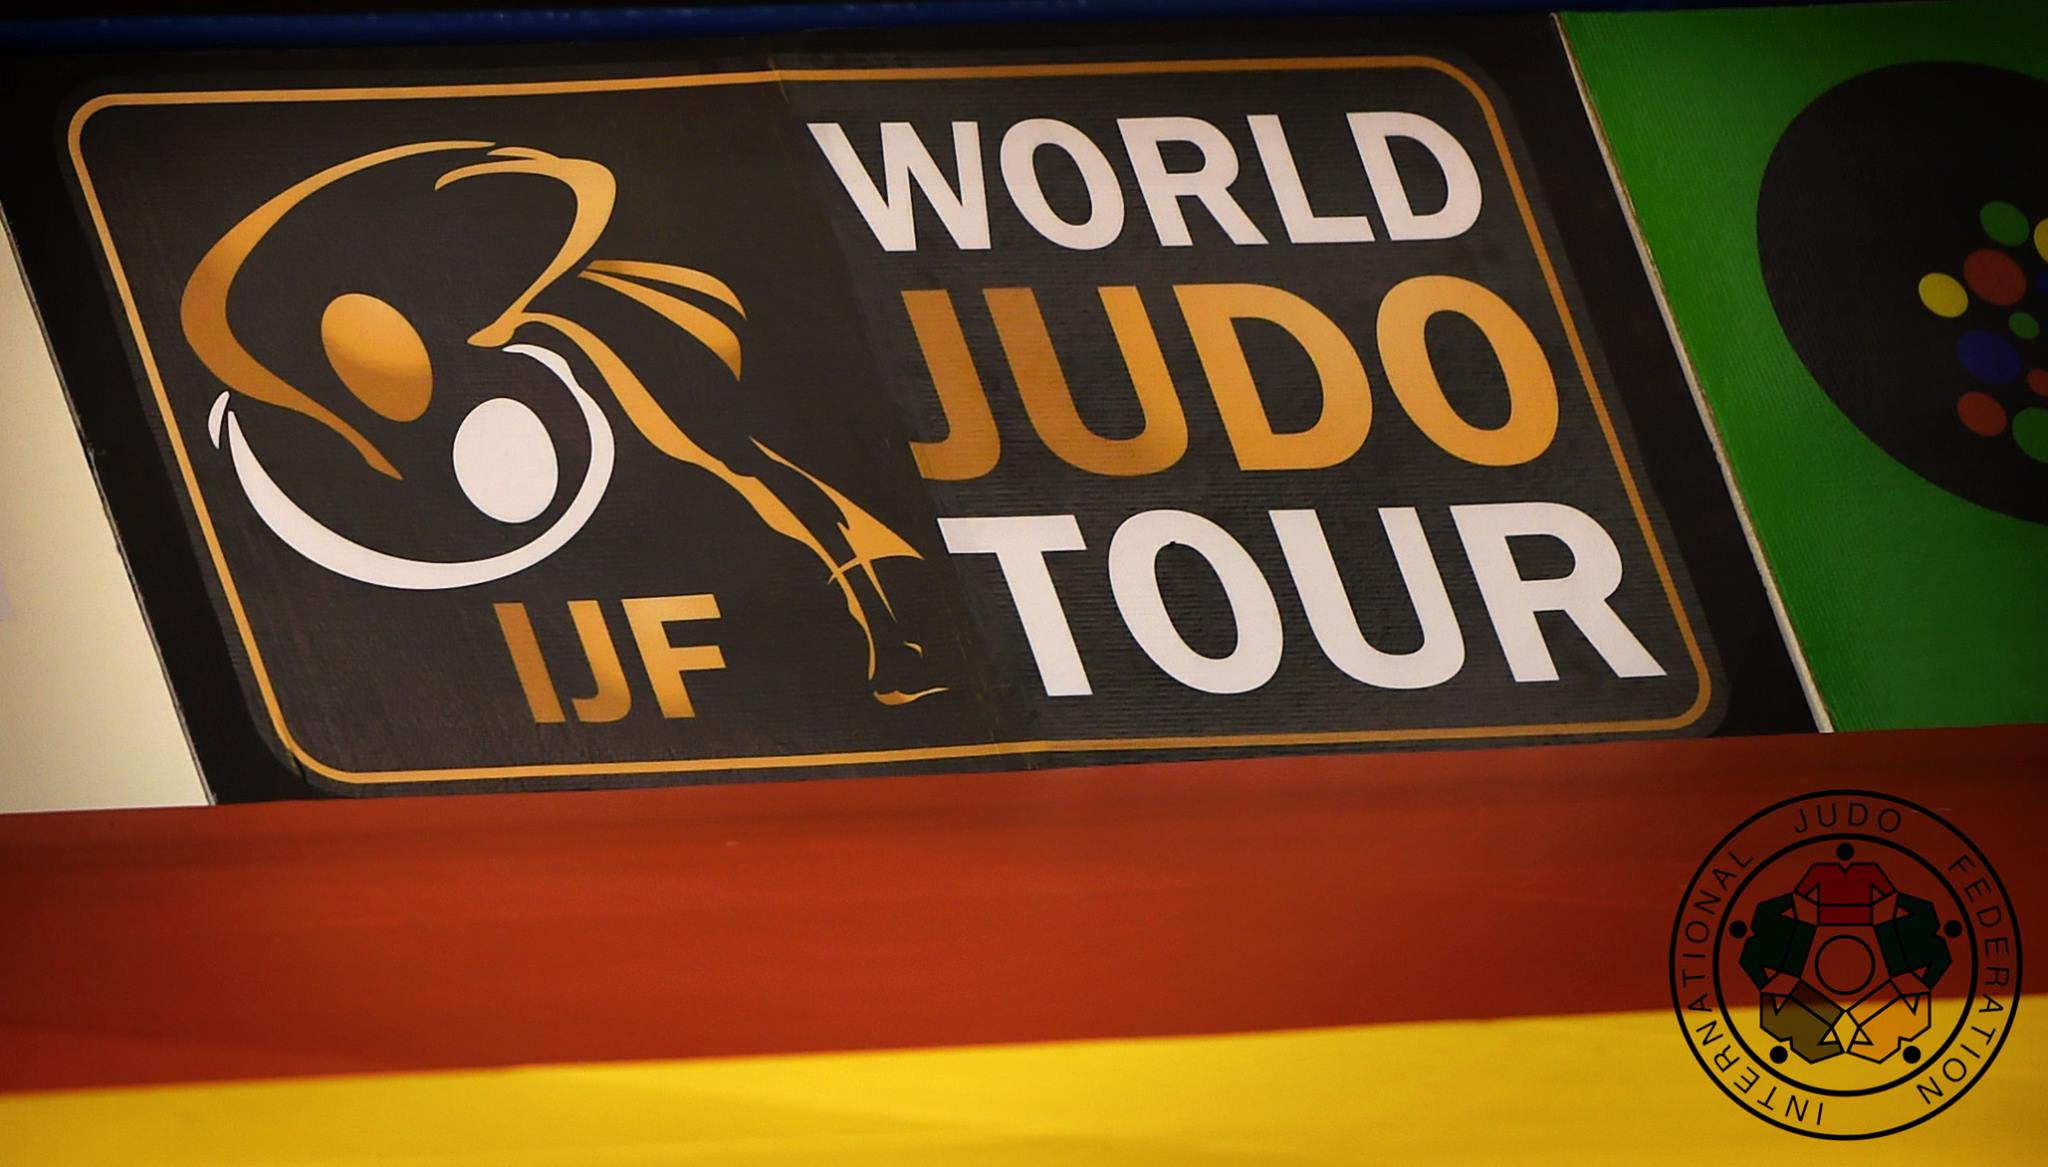 IJF World Tour.jpg